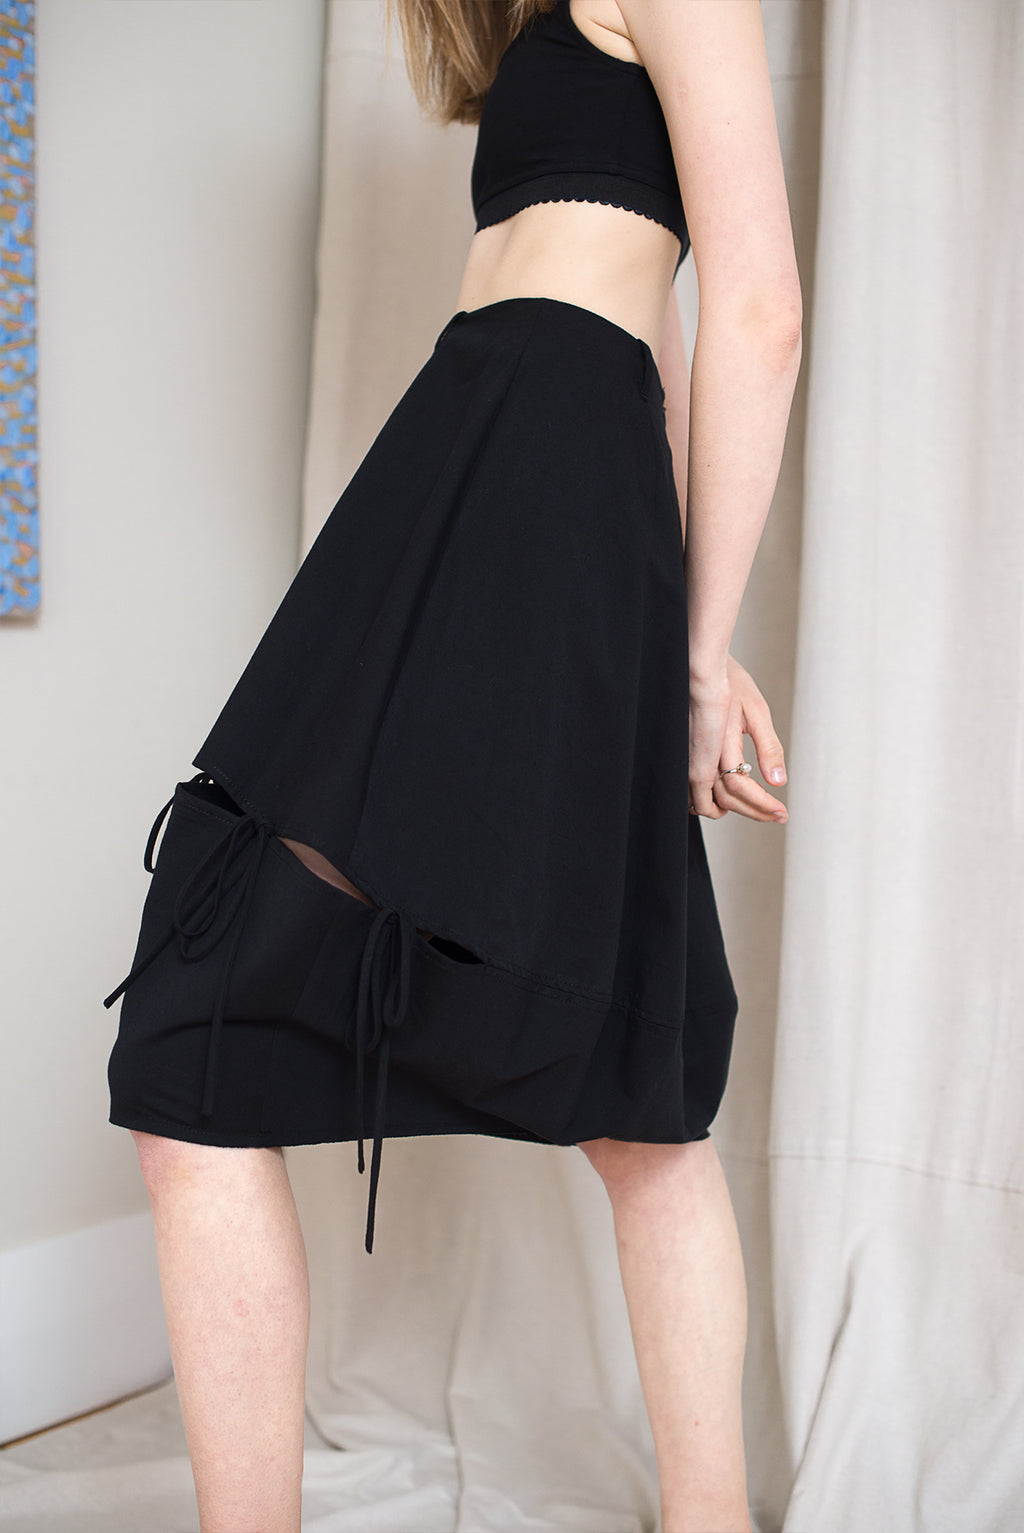 Plankton Skirt - Black - LOCLAIRE